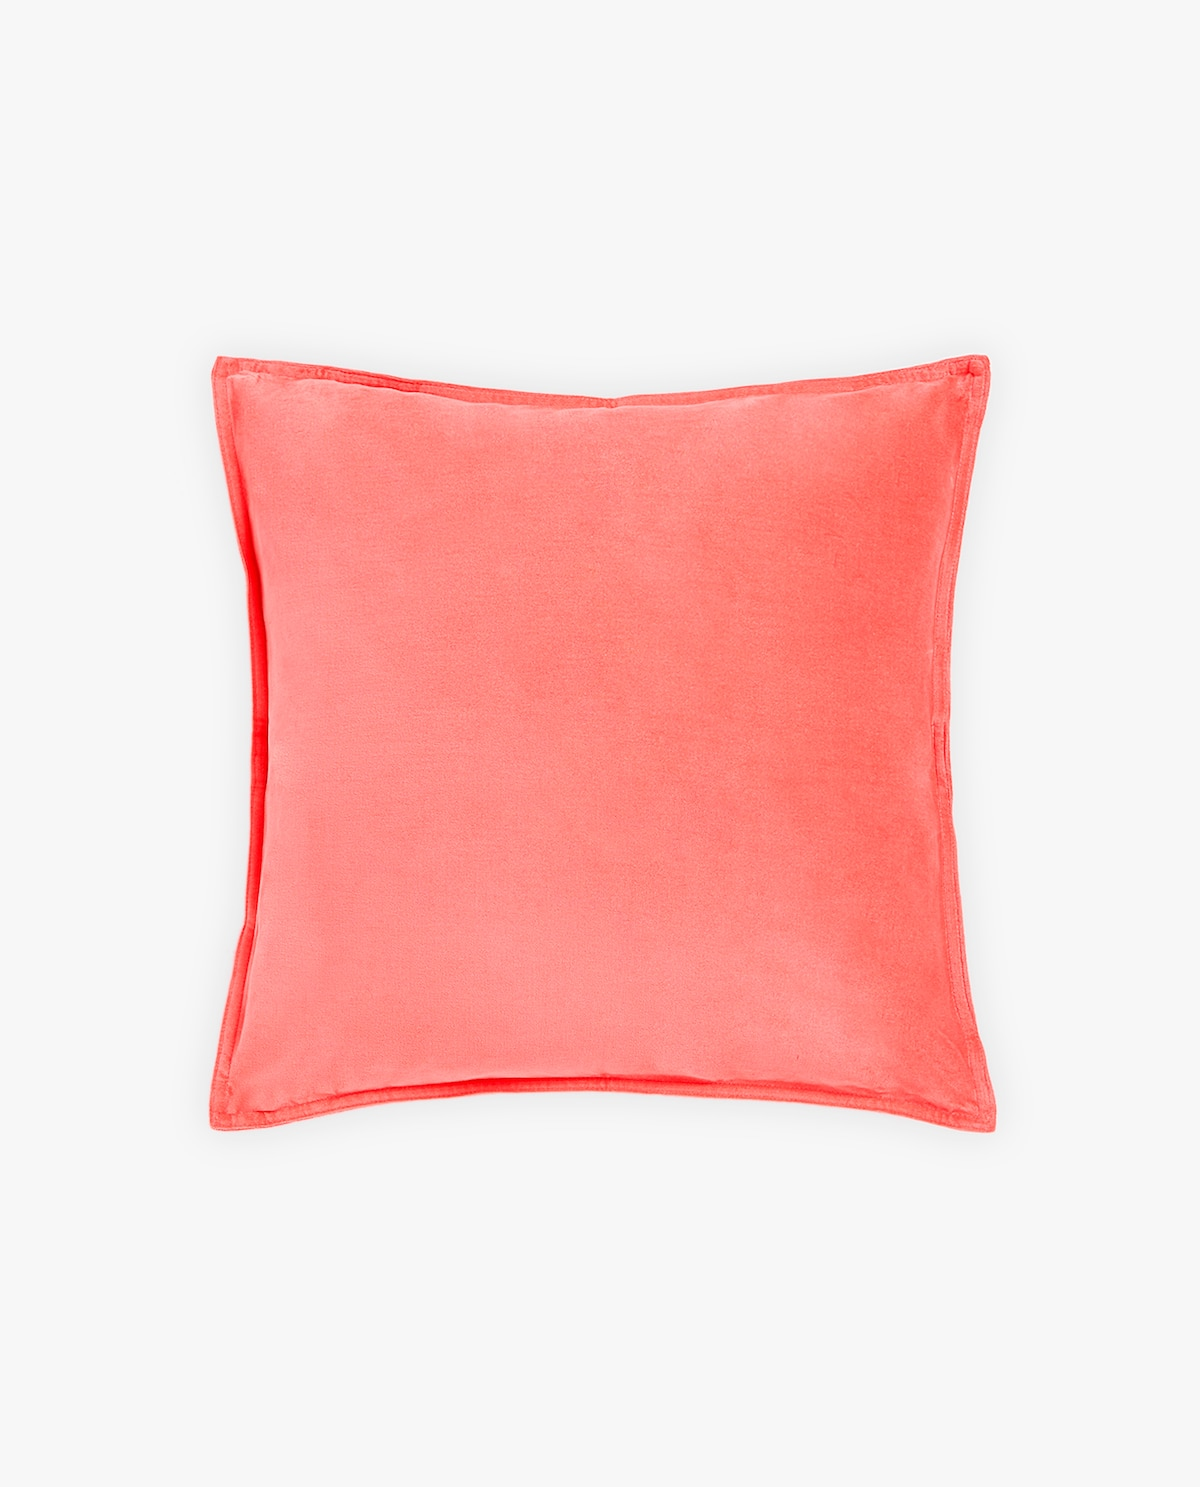 Velvet throw pillow in coral